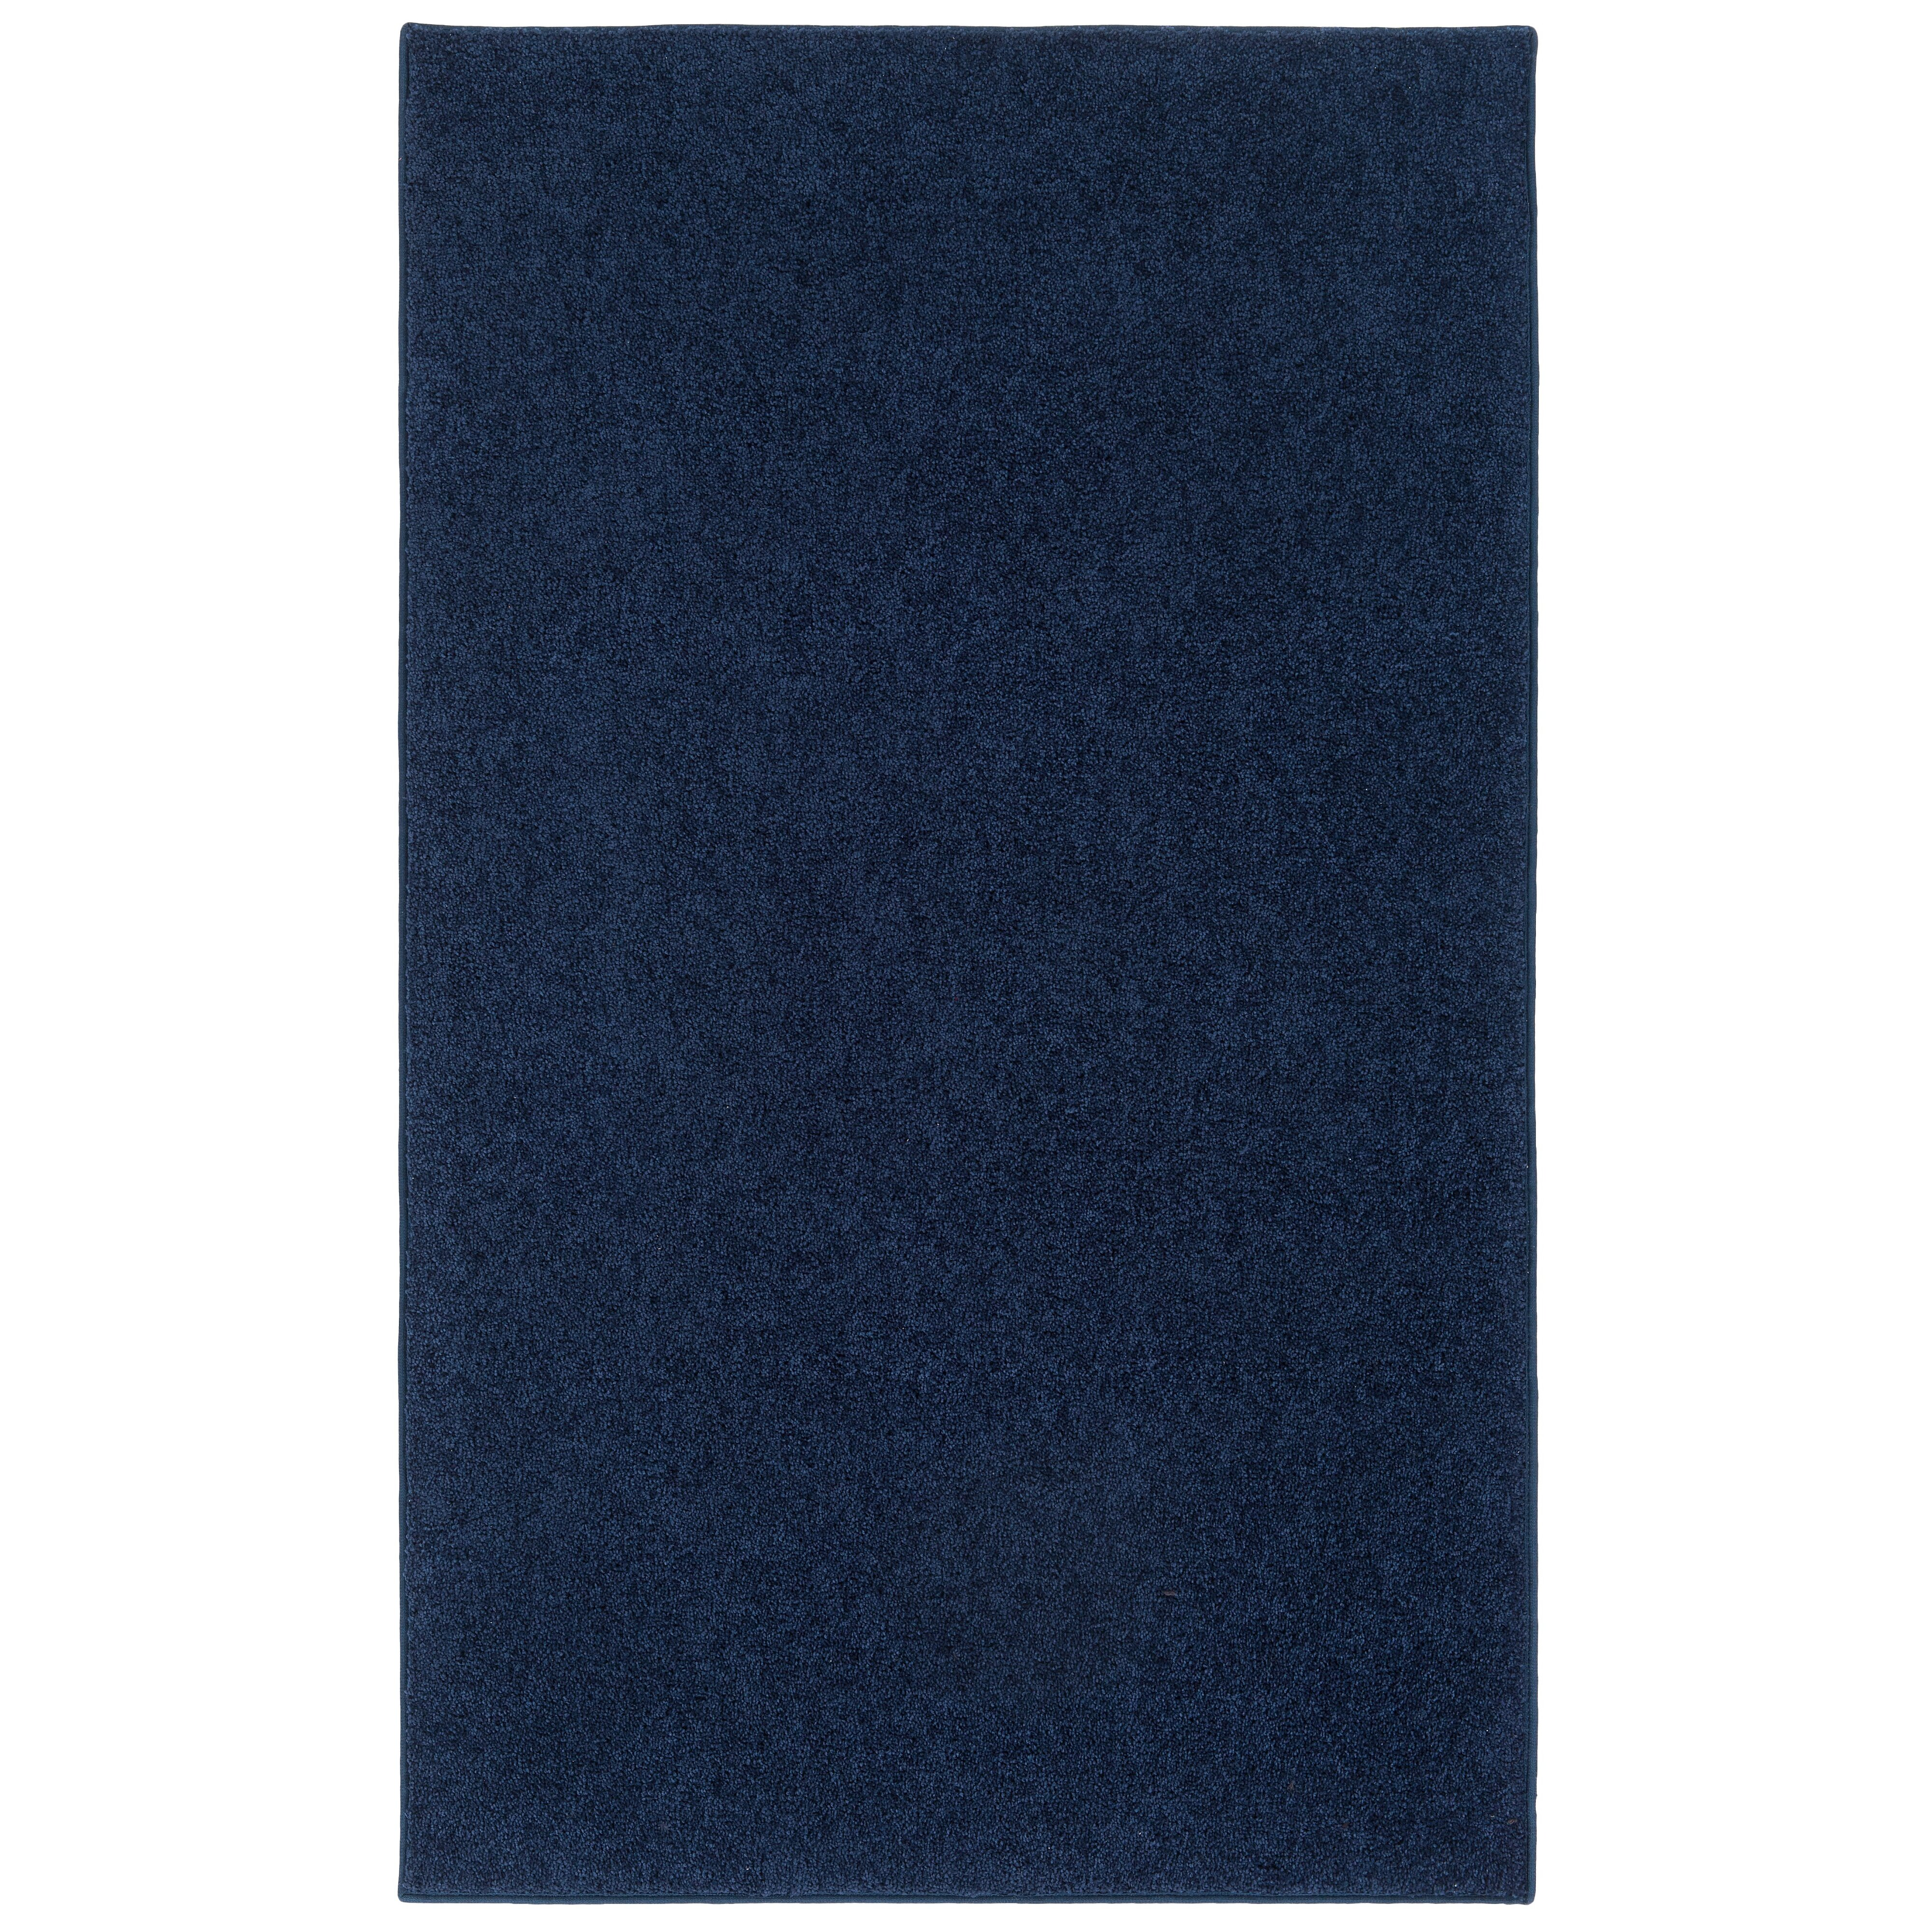 Nance Industries Ourspace Bright Midnight Navy Blue Area